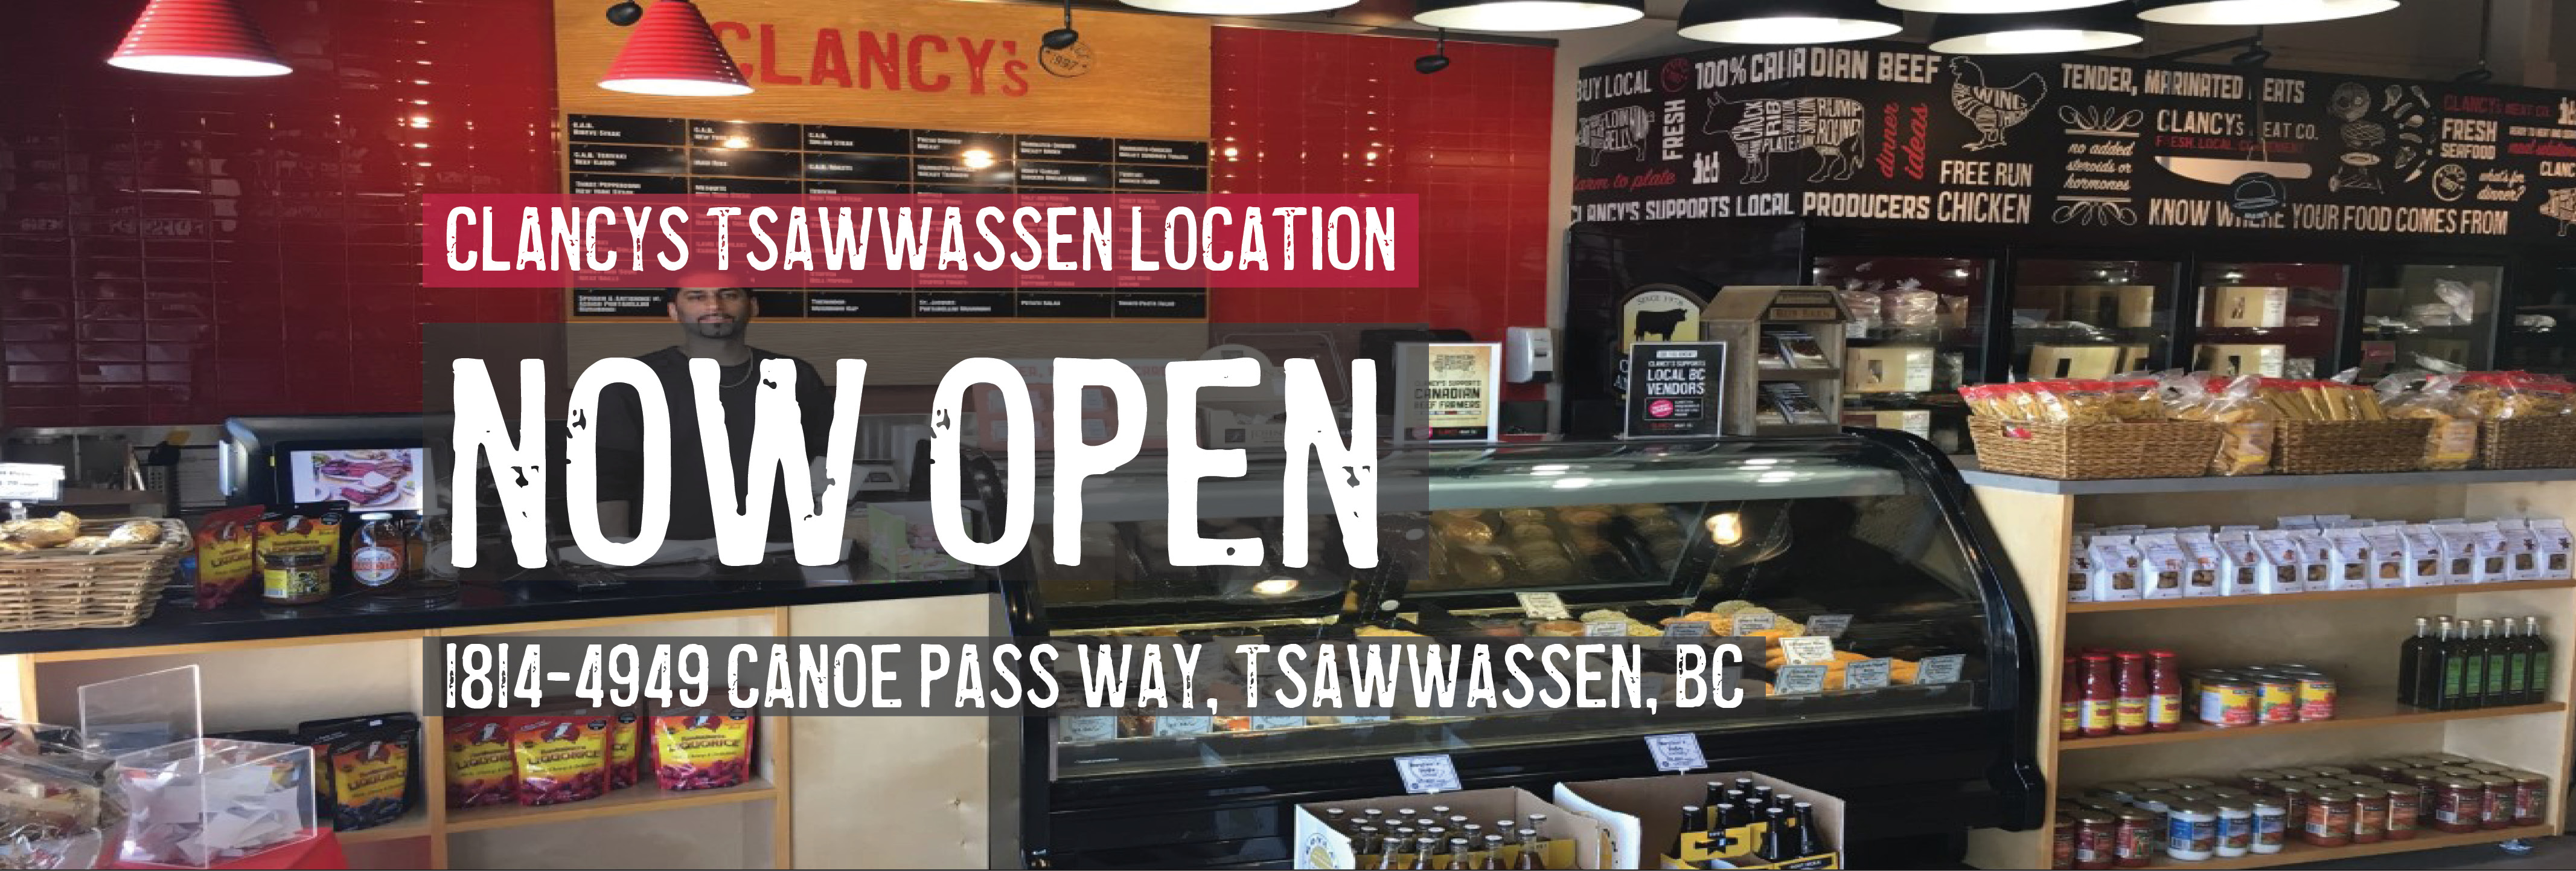 CLancys Tsawwassen Now Open Slider.jpg